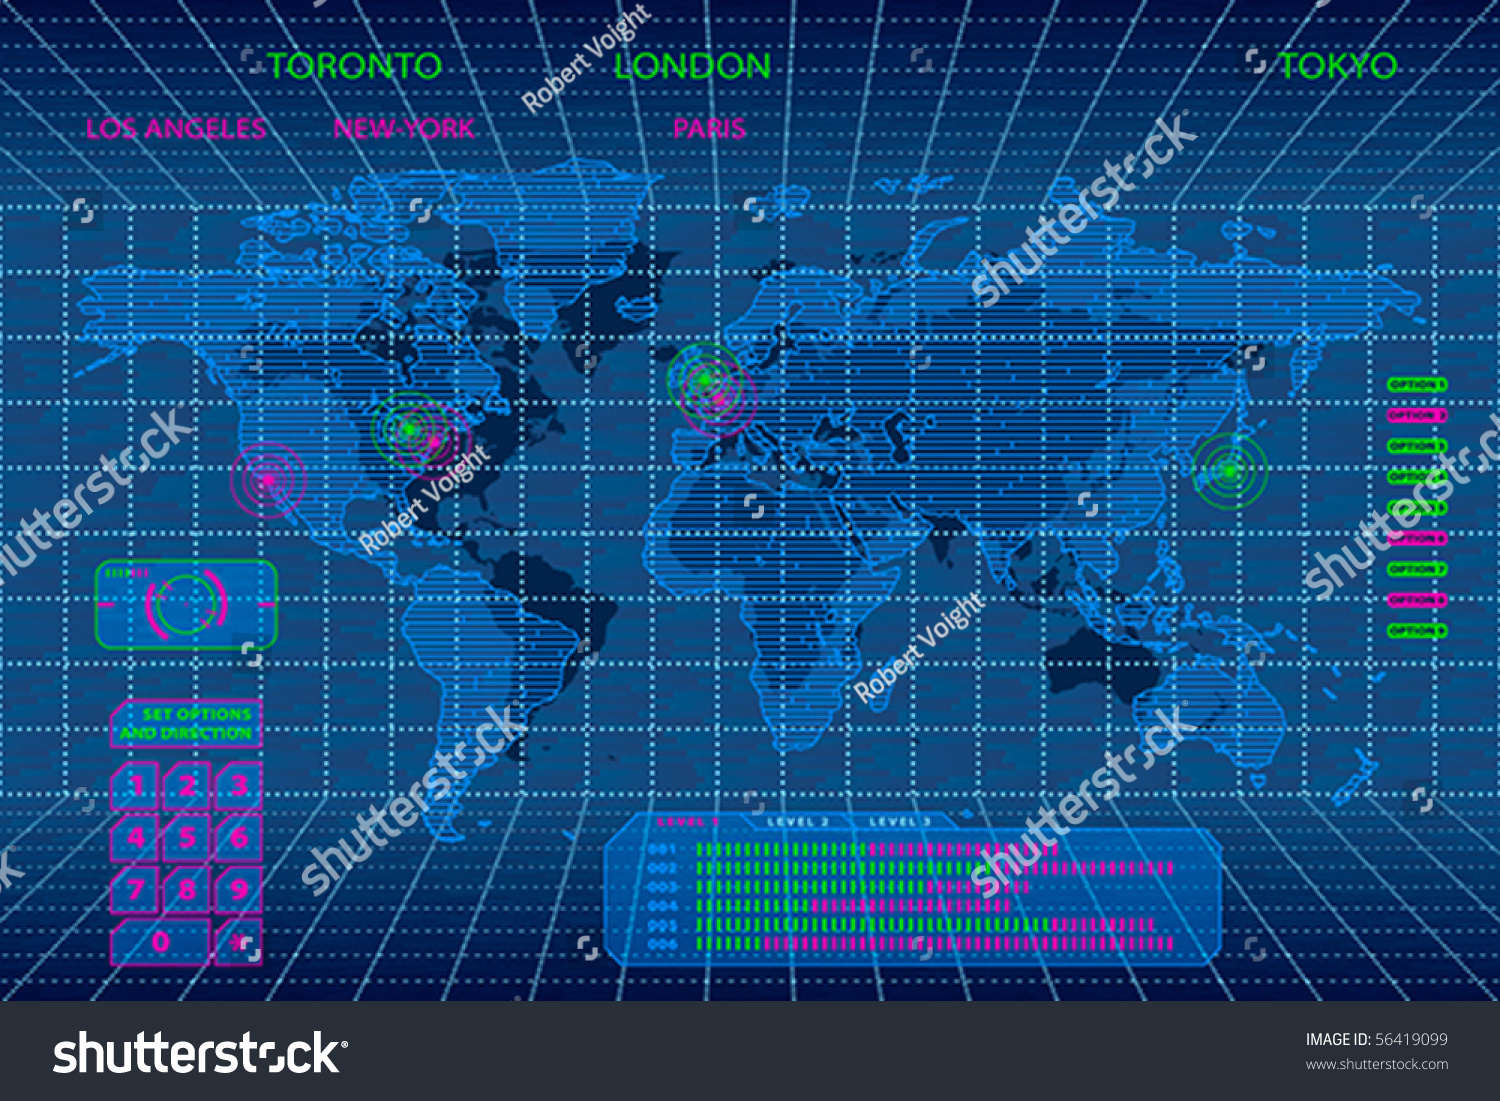 Interactive 3d digital world map concept stock vector 56419099 interactive 3d digital world map concept sciox Images